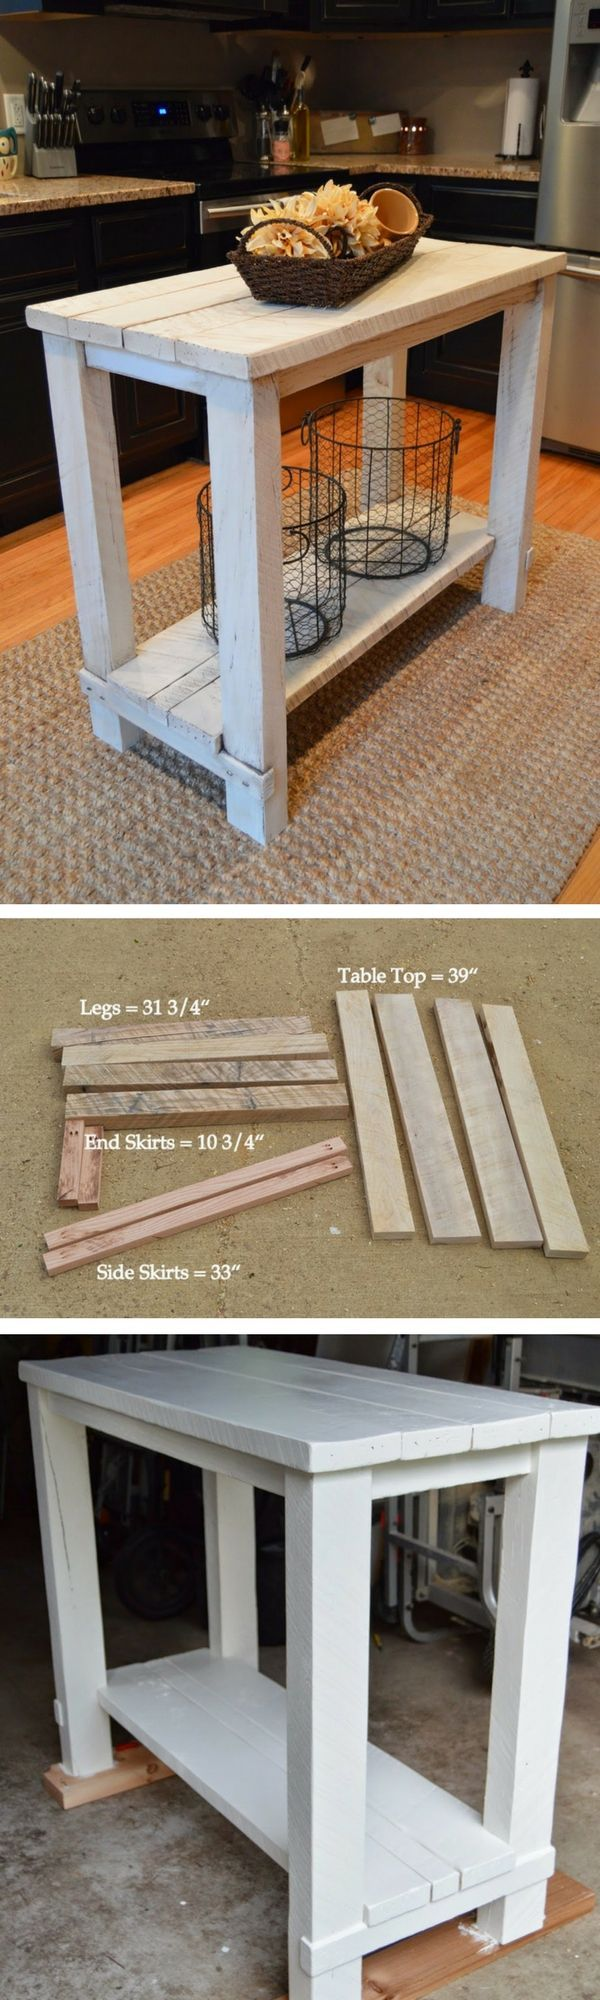 Check out the tutorial on how to build a diy kitchen island from